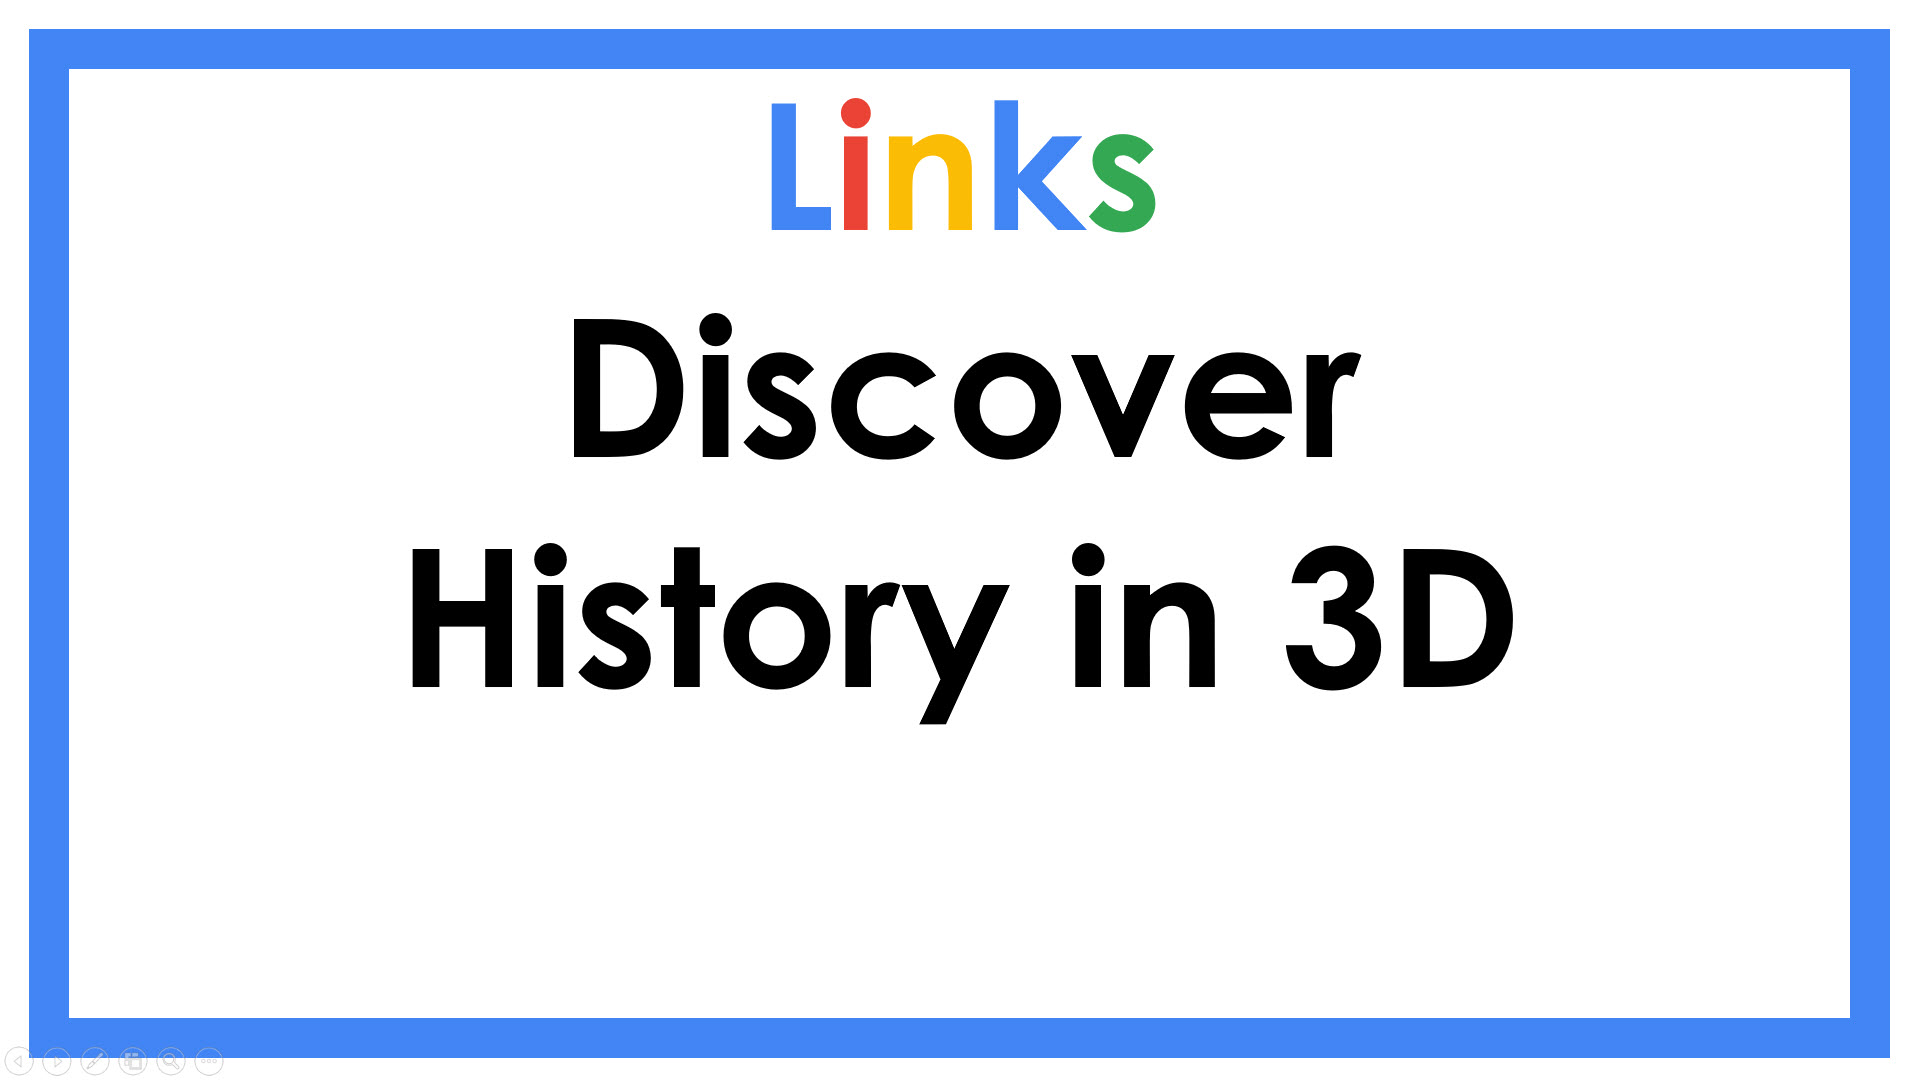 Links Discover History in 3D